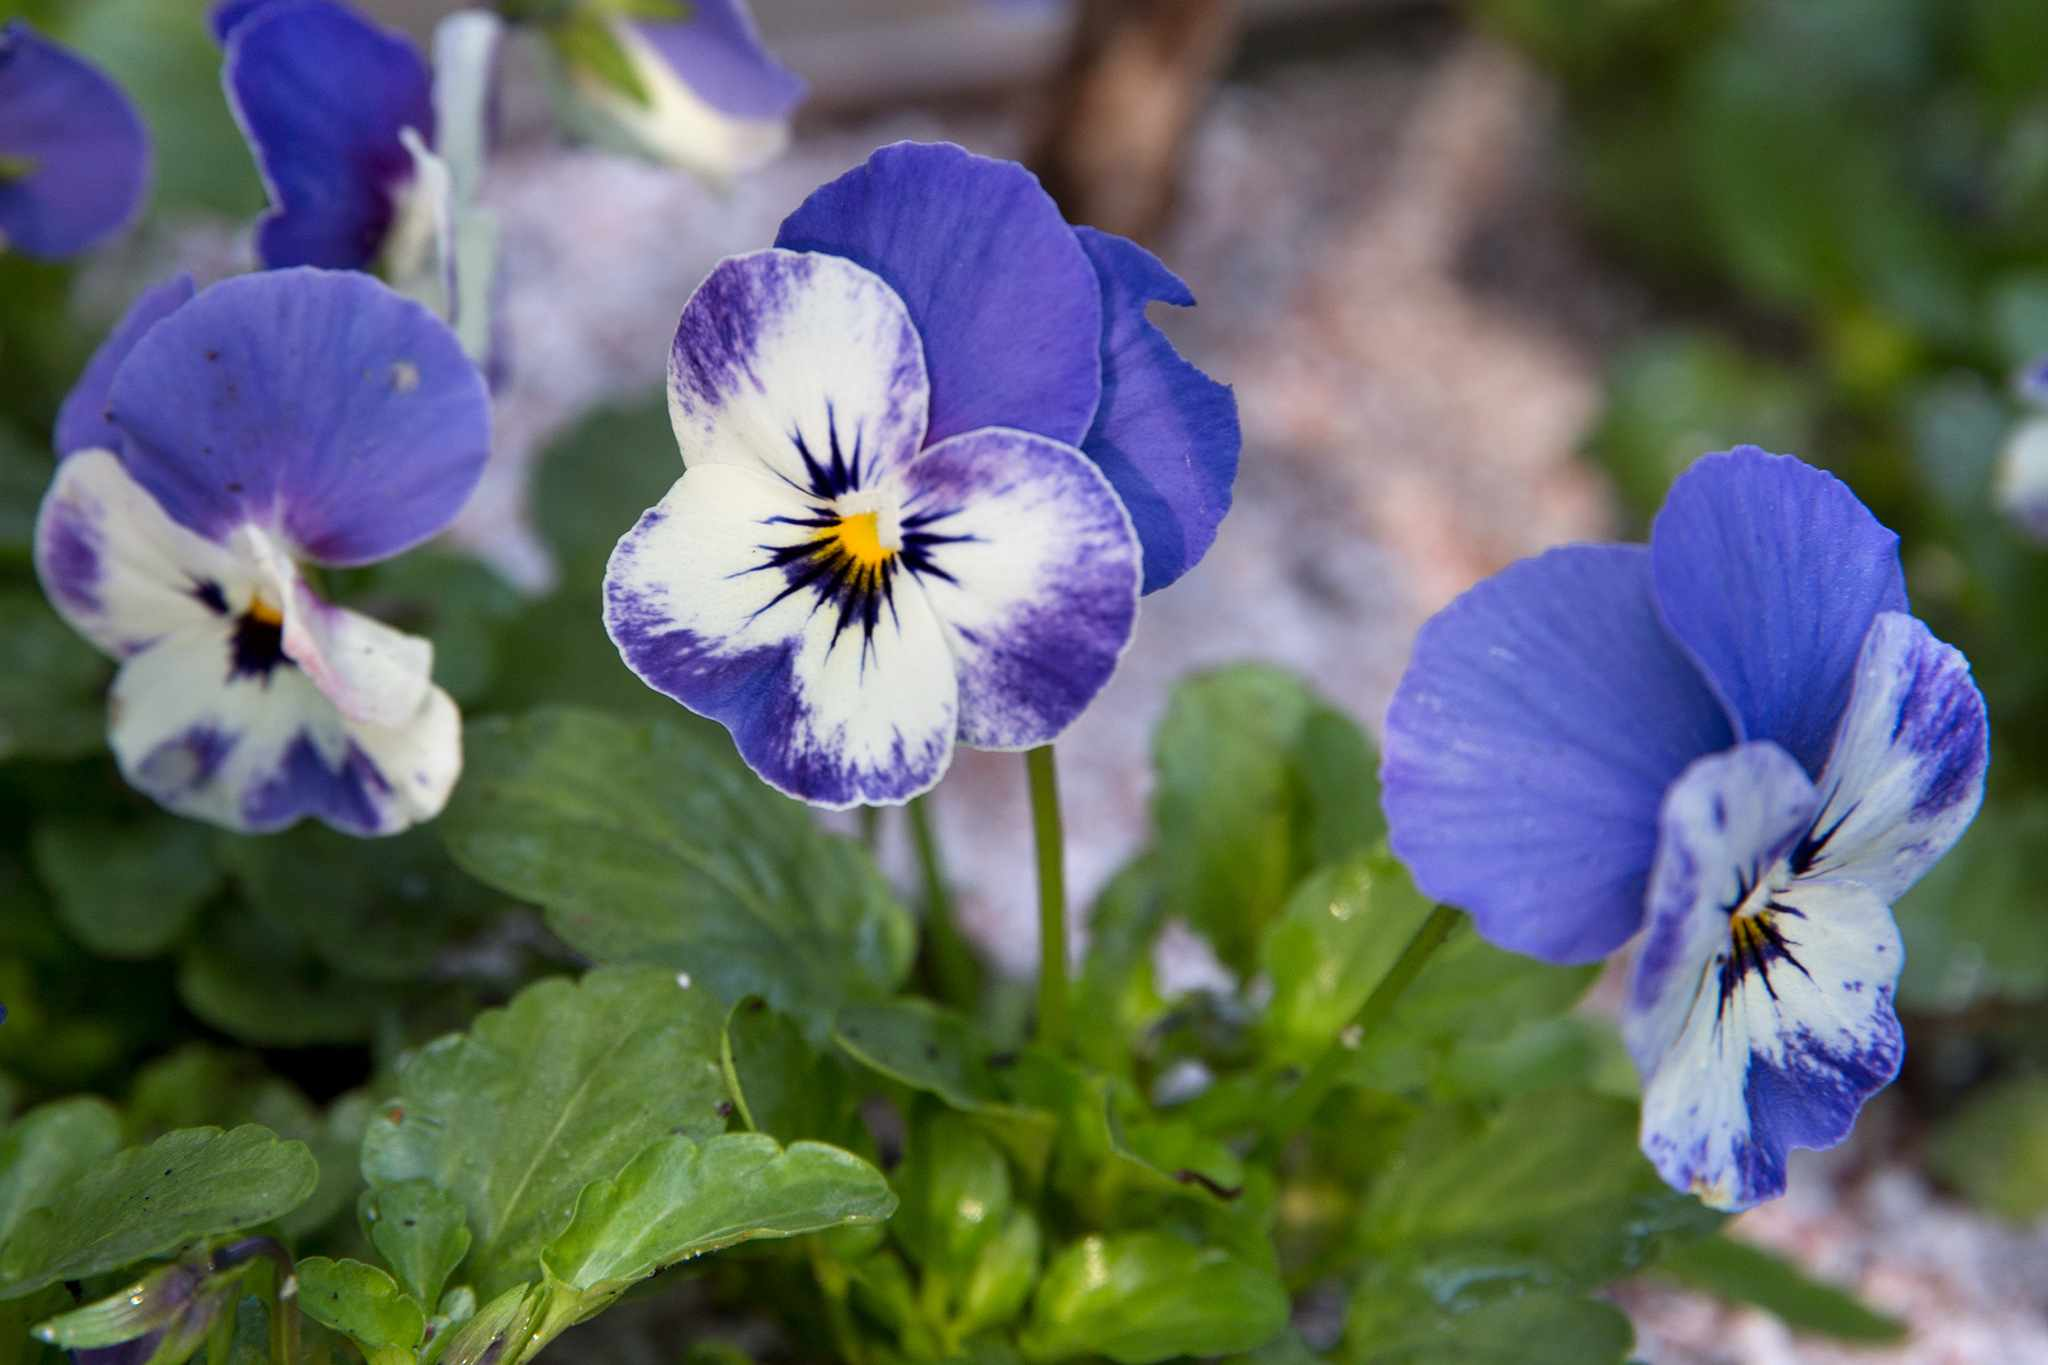 Blue and white flowers of Viola 'Delft Blue'